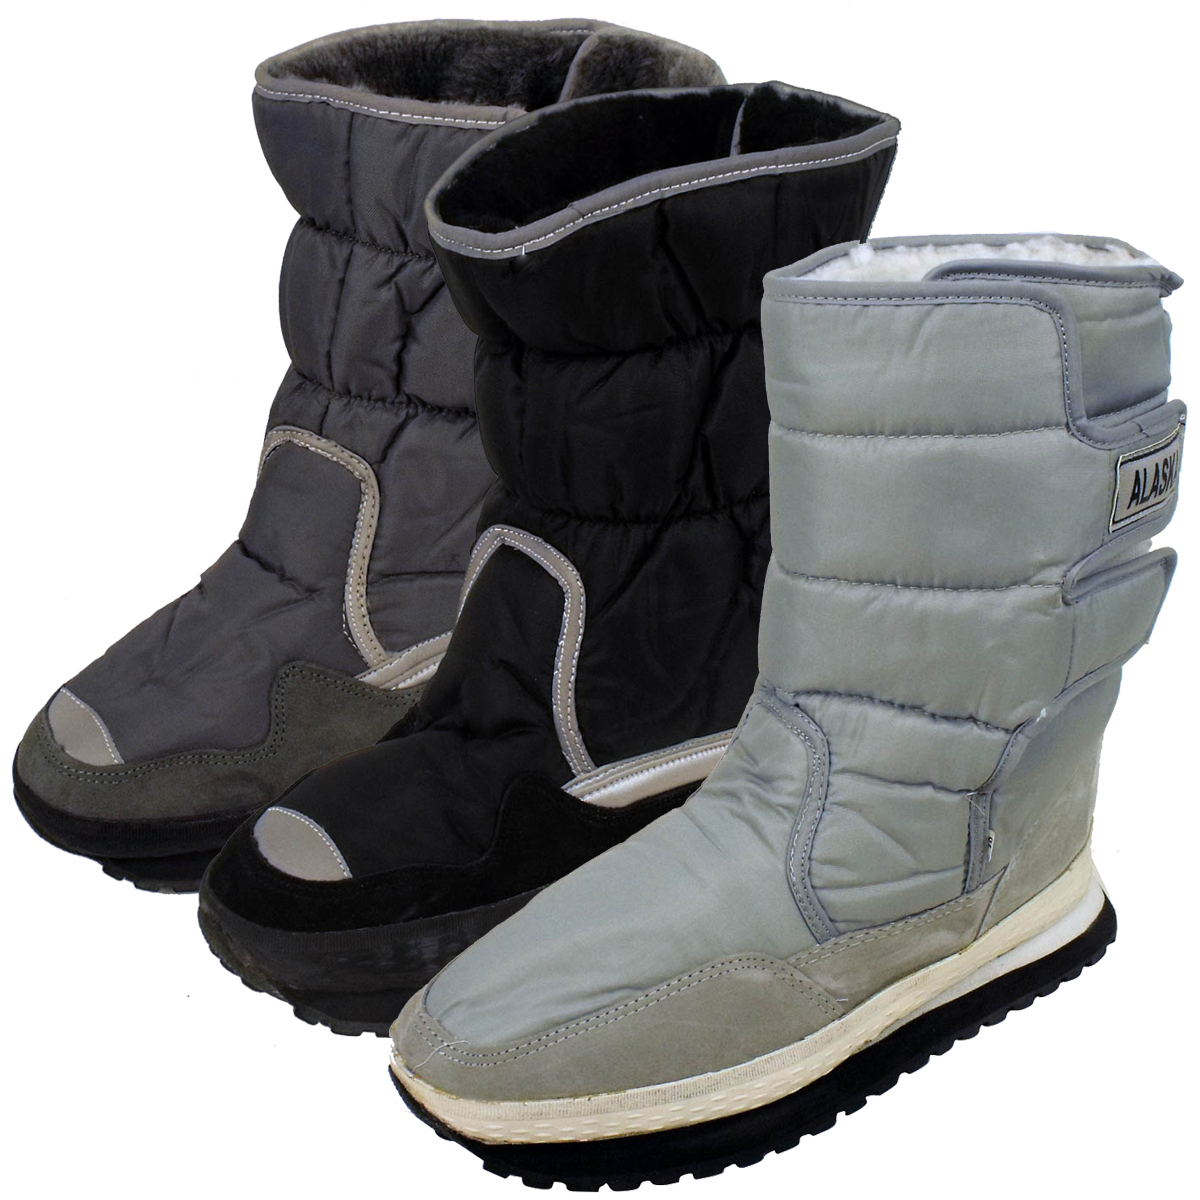 Mens Moon Boots Bsrjc Boots